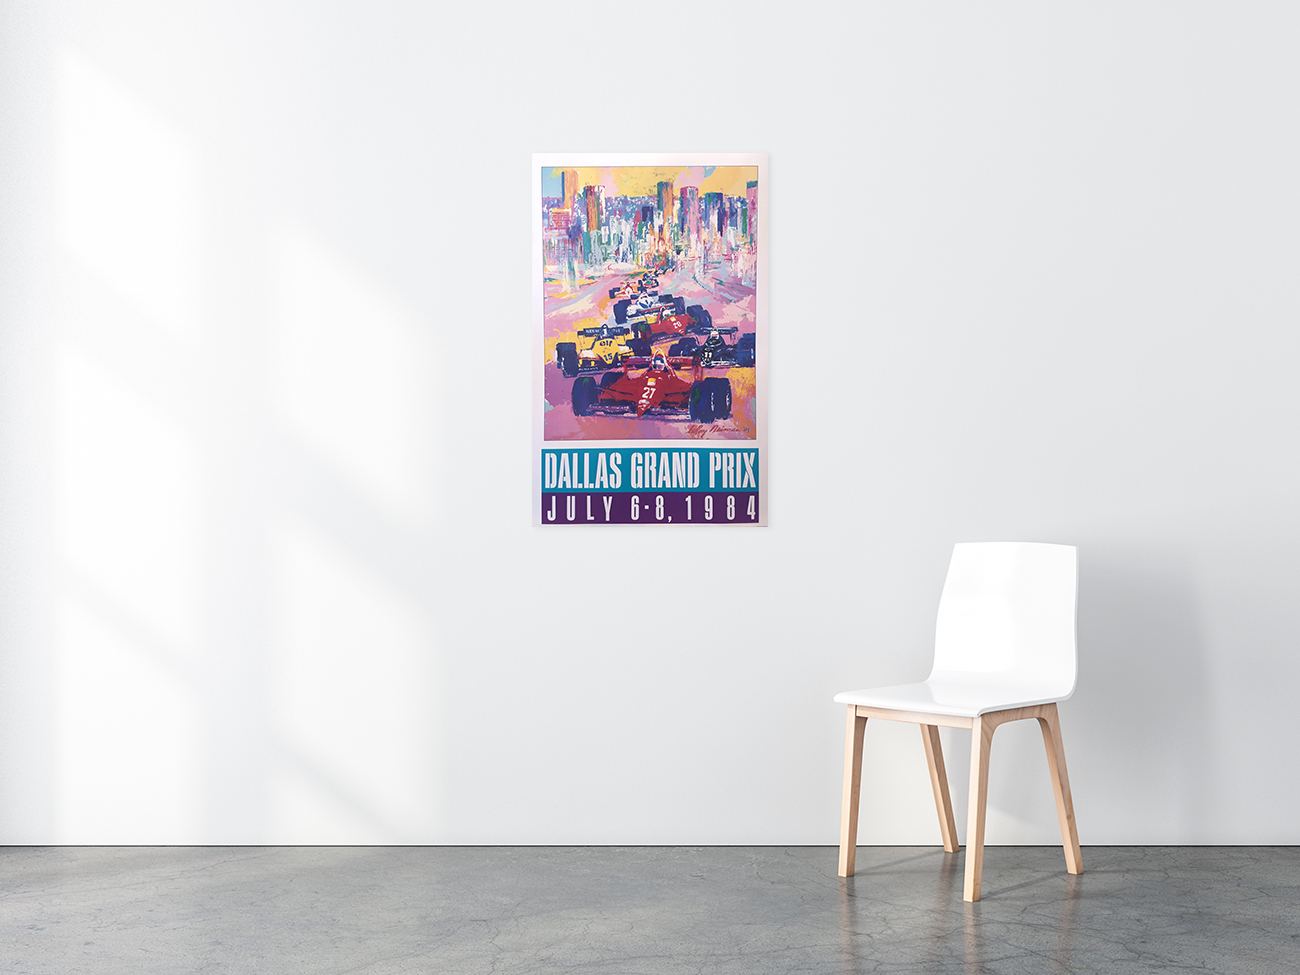 Dallas Grand Prix poster in situ